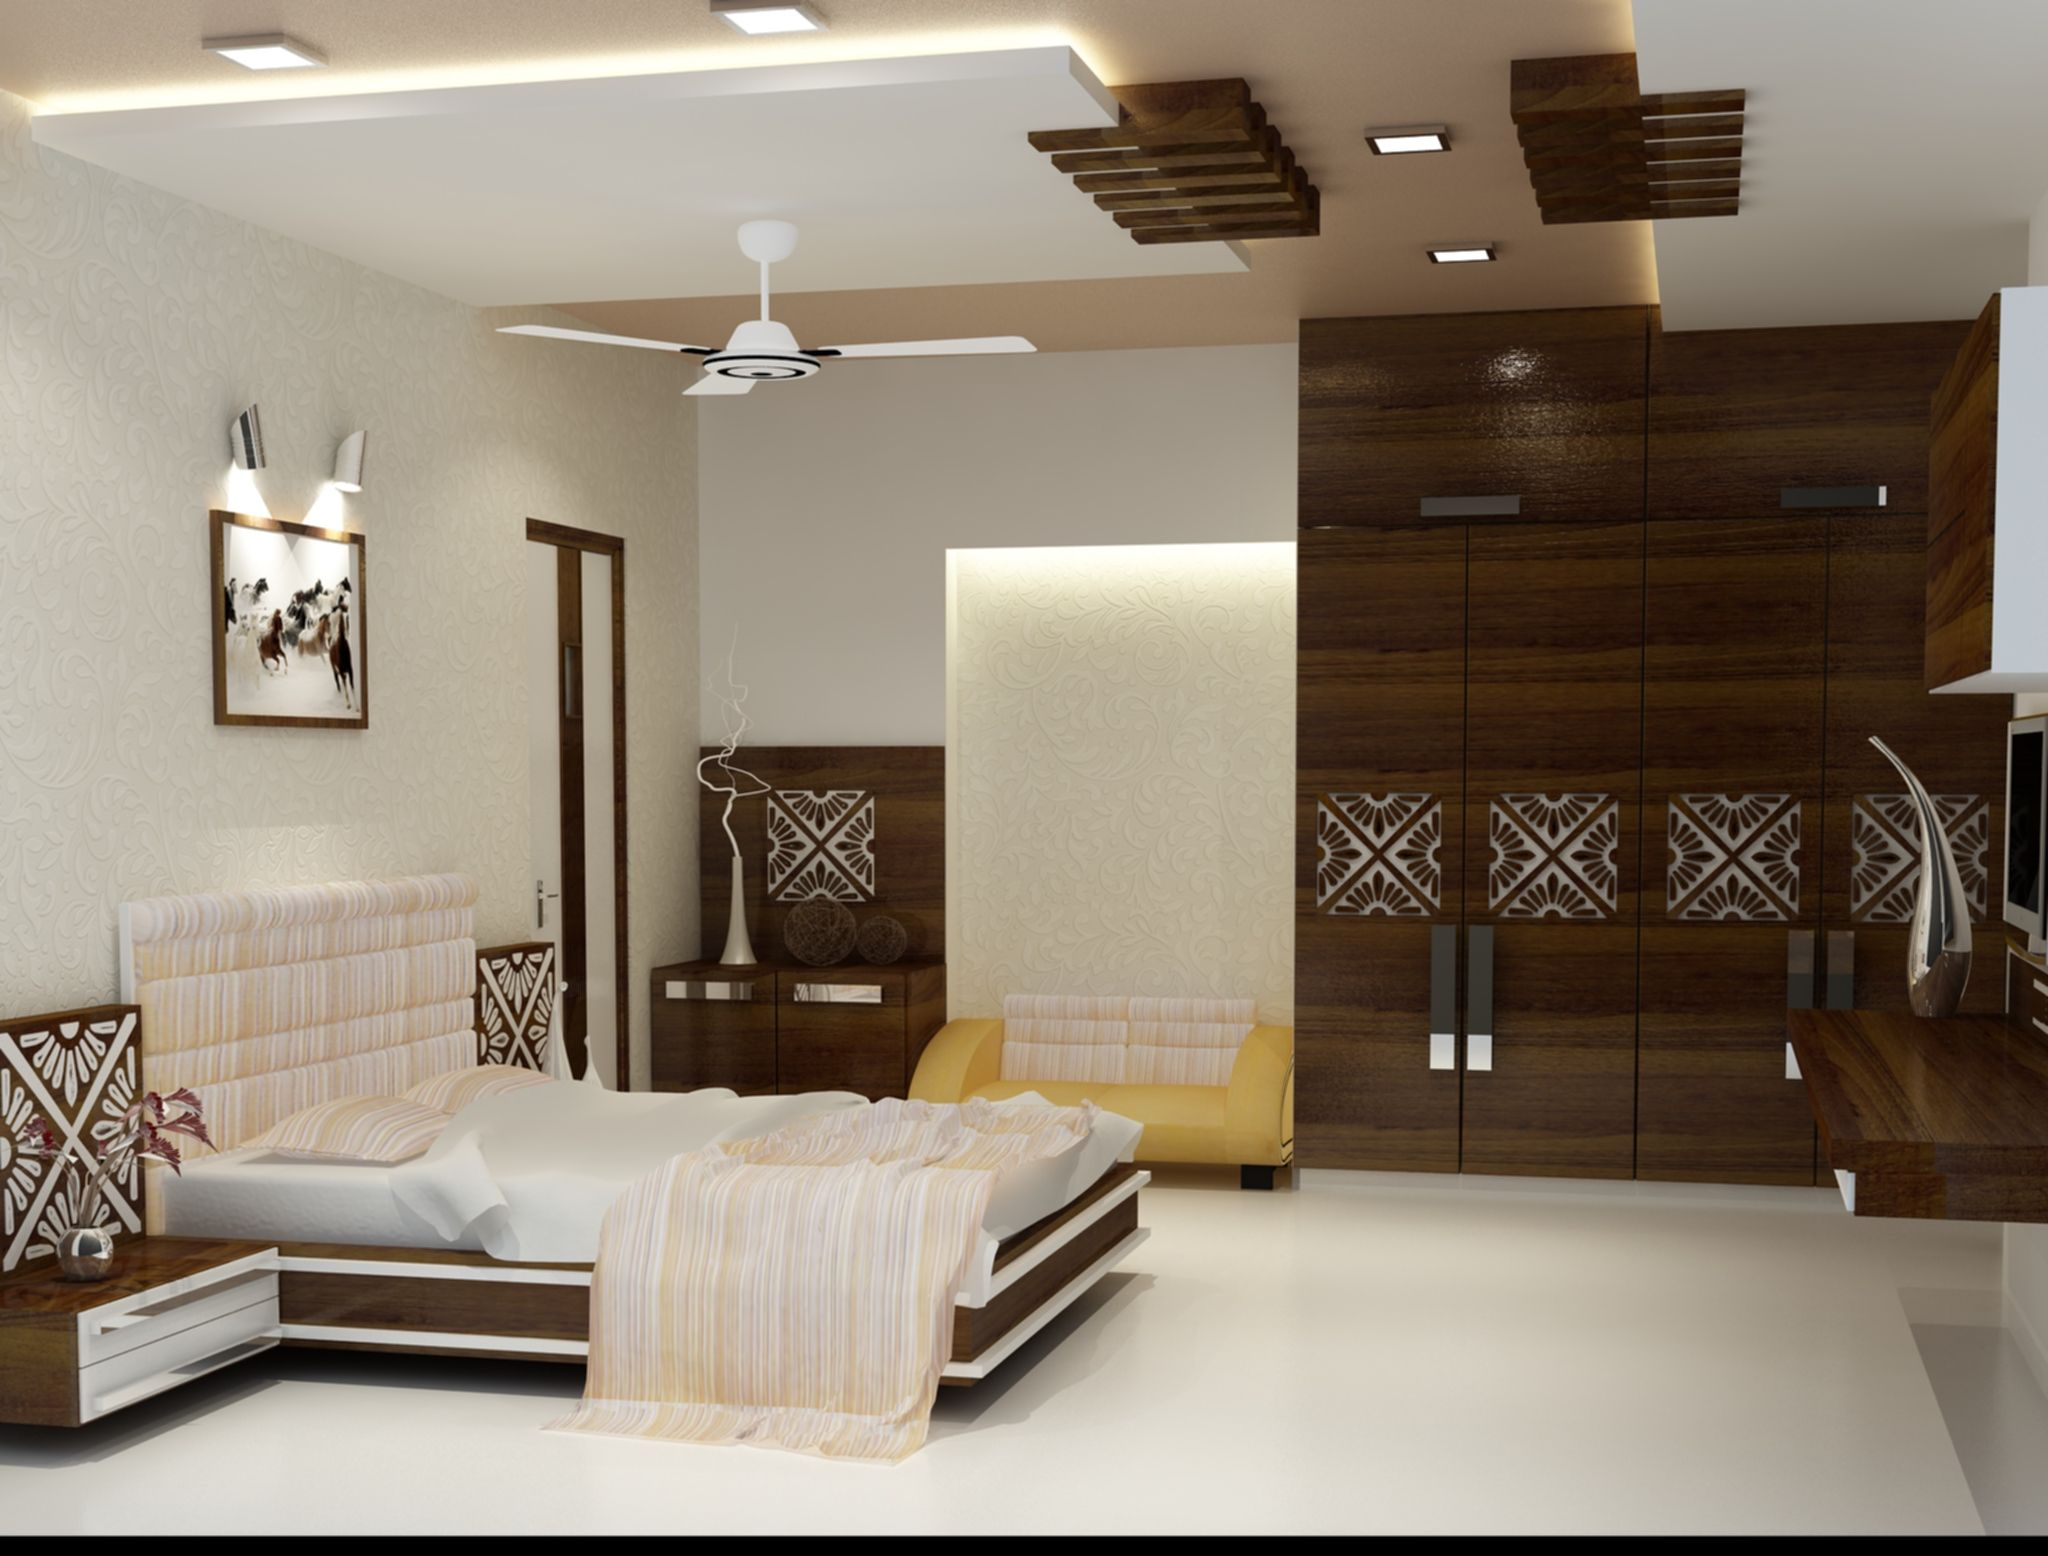 Design For Indian Interiors Google Search Bed Room